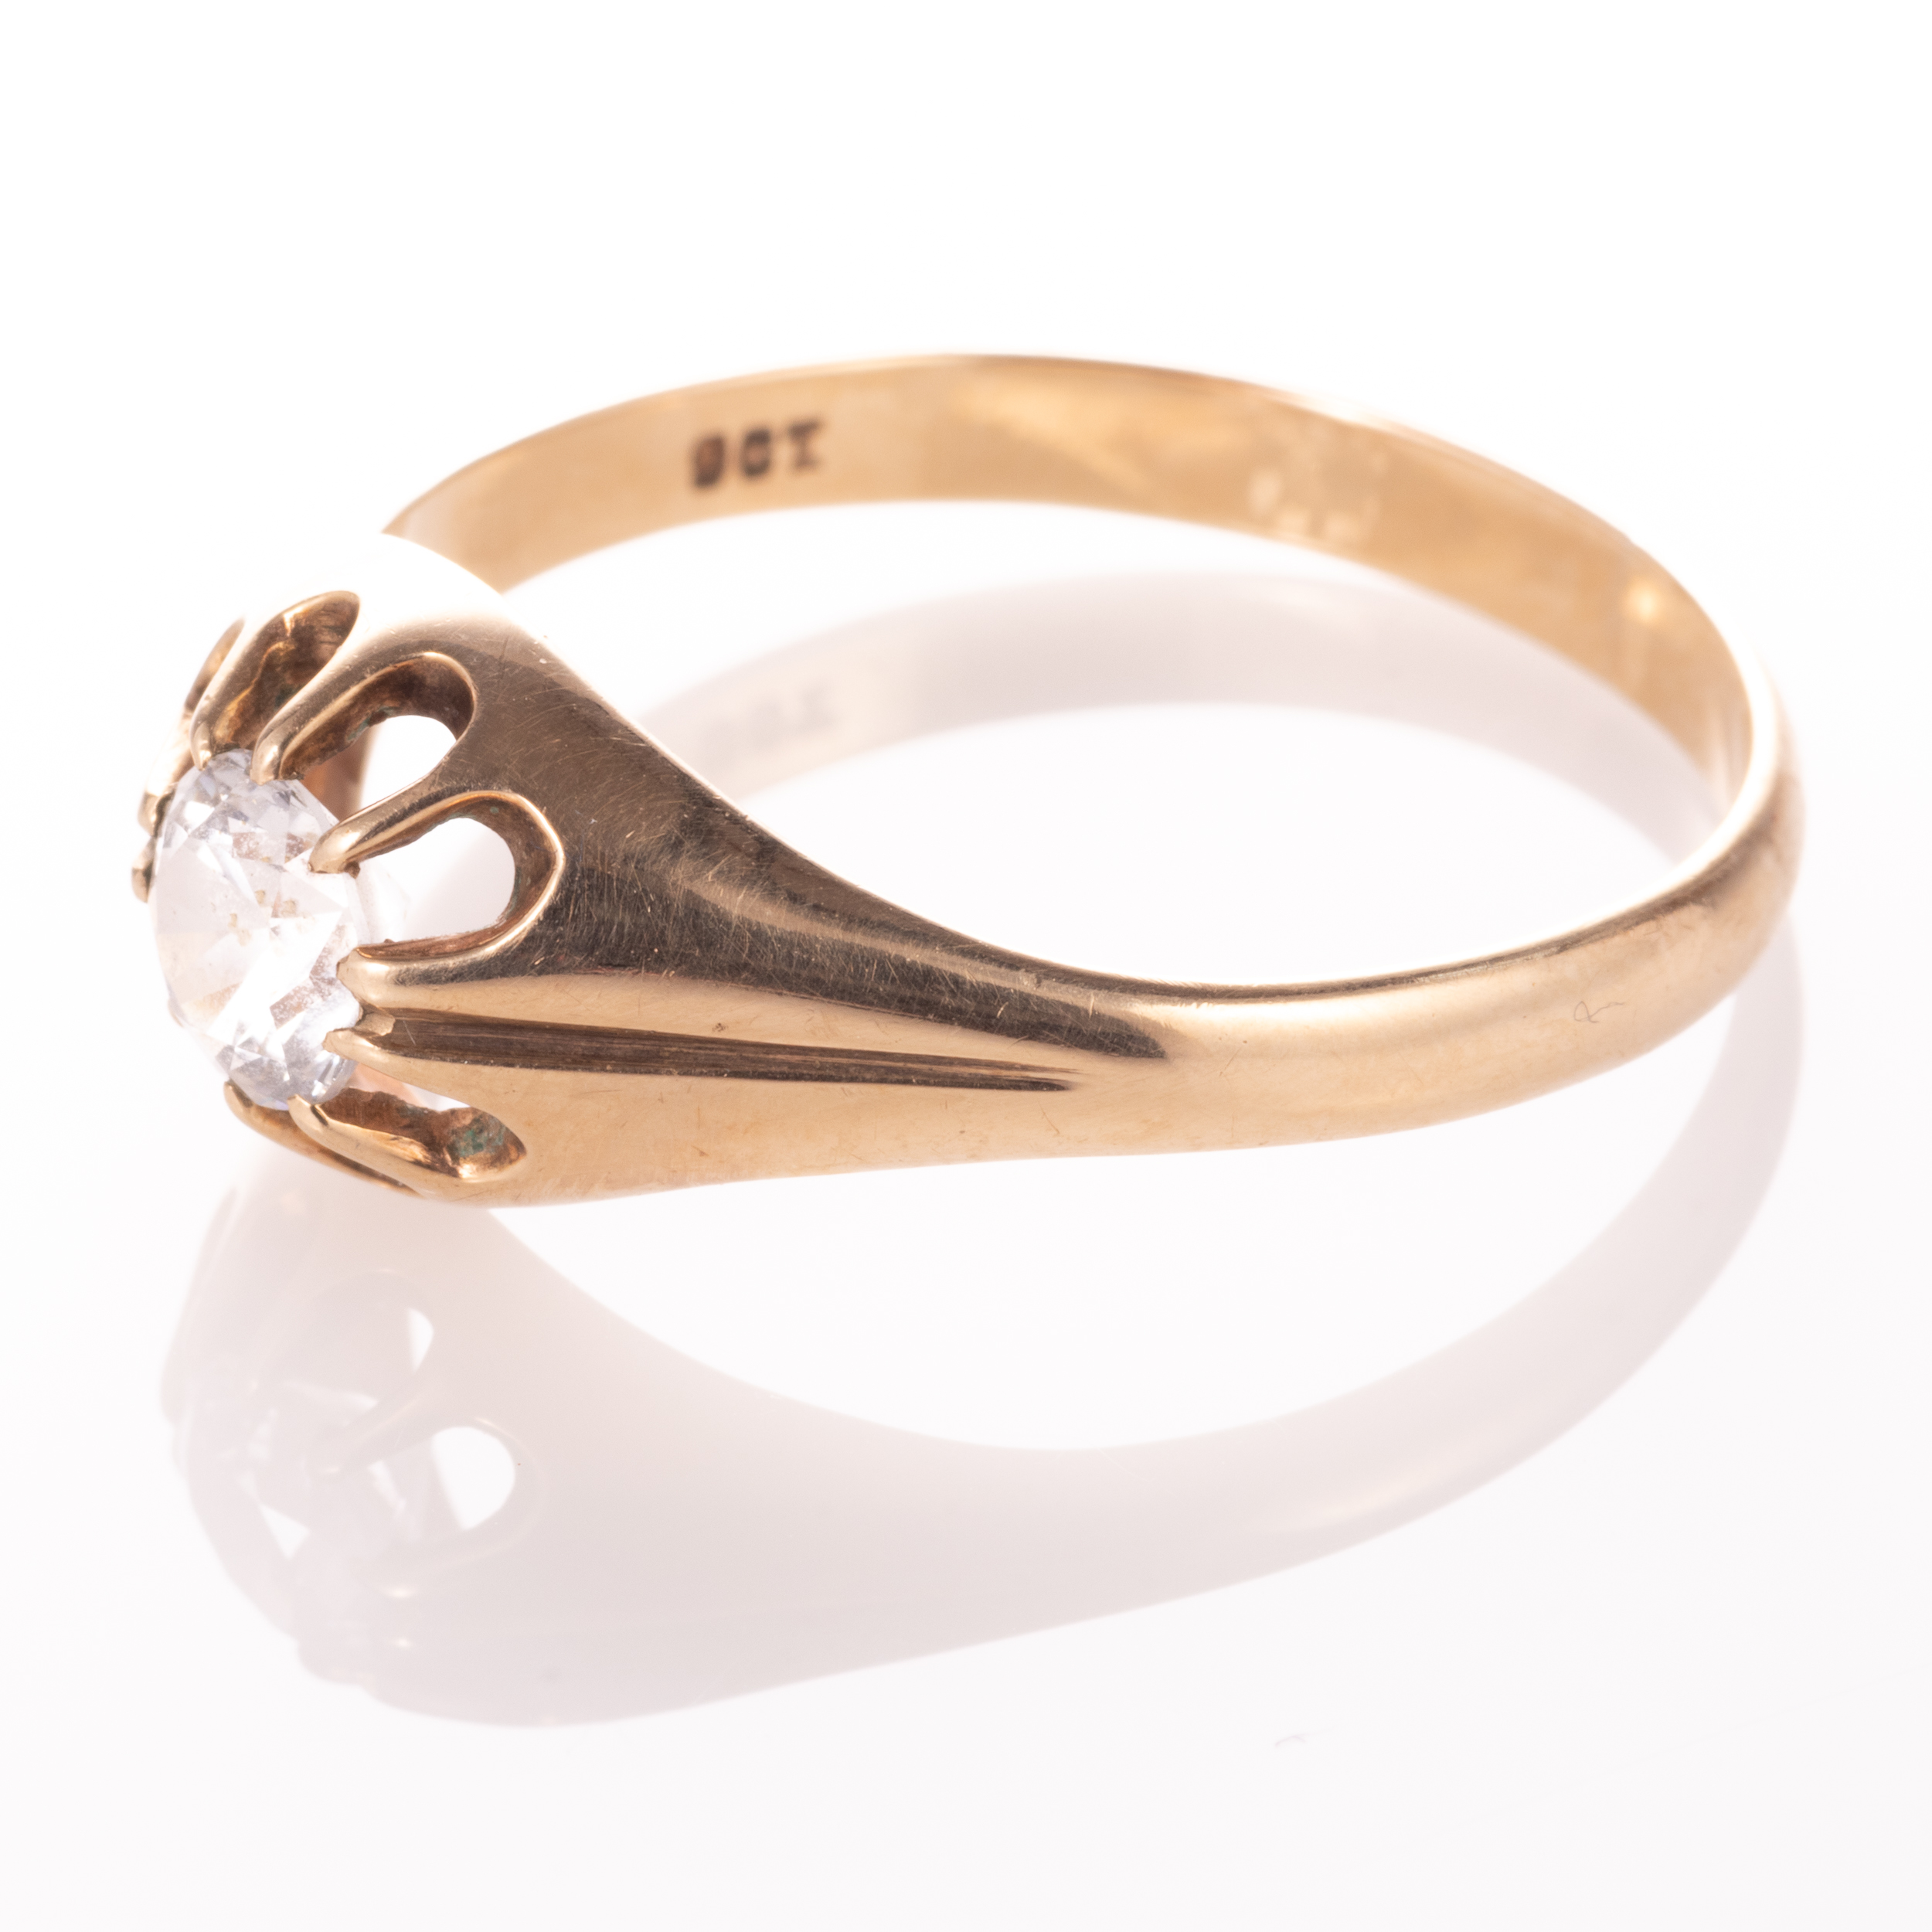 9ct Gold Gypsy Paste Solitaire Ring - Image 4 of 7